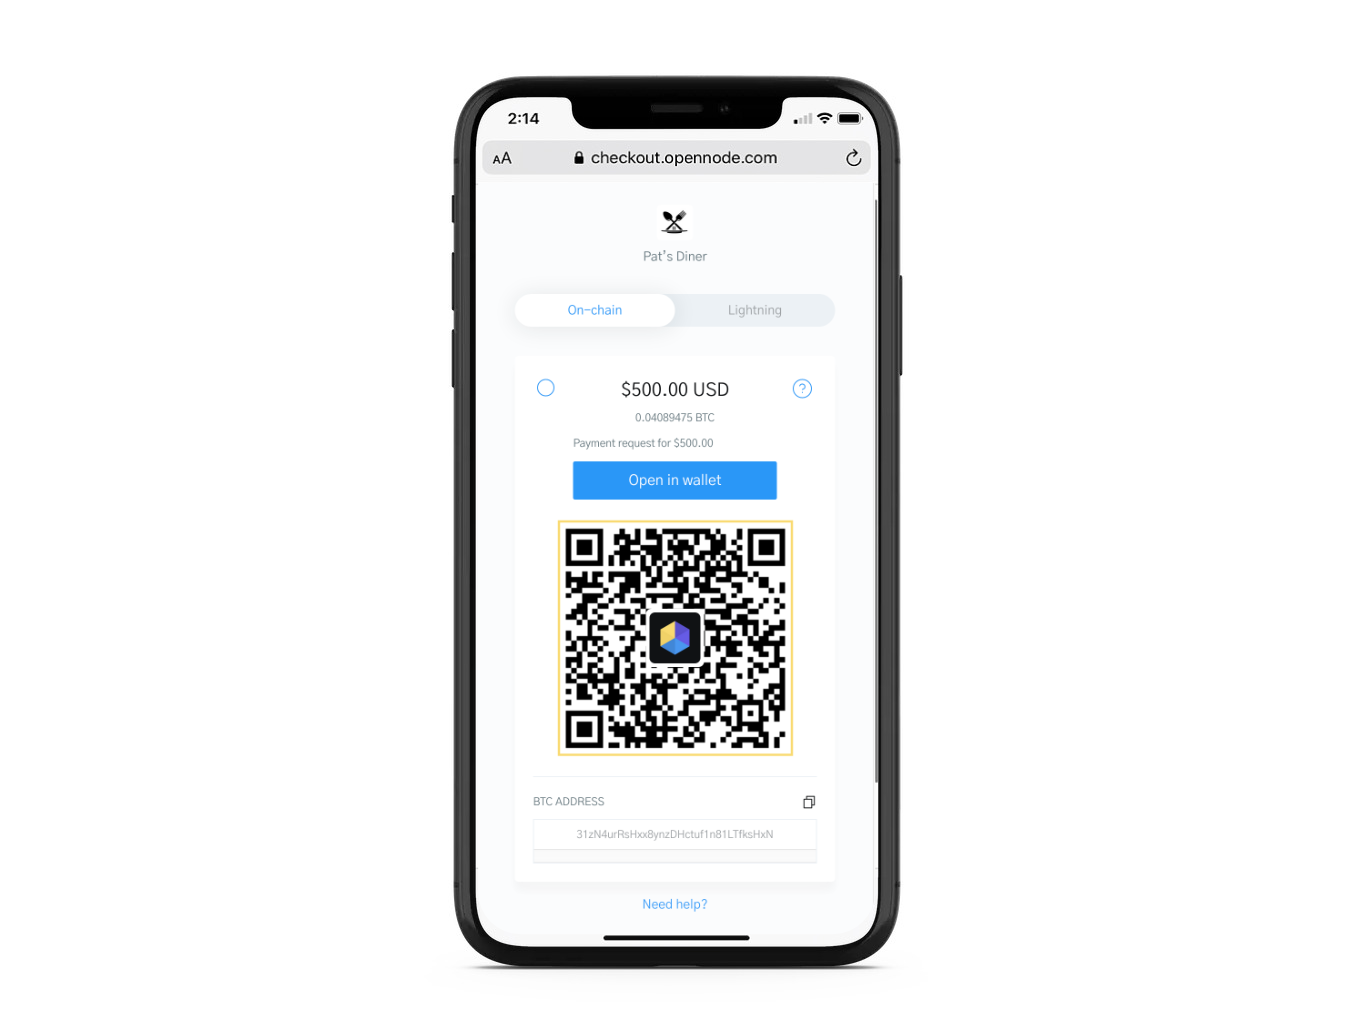 Image of a Bitcoin Checkout with focus on the QR code